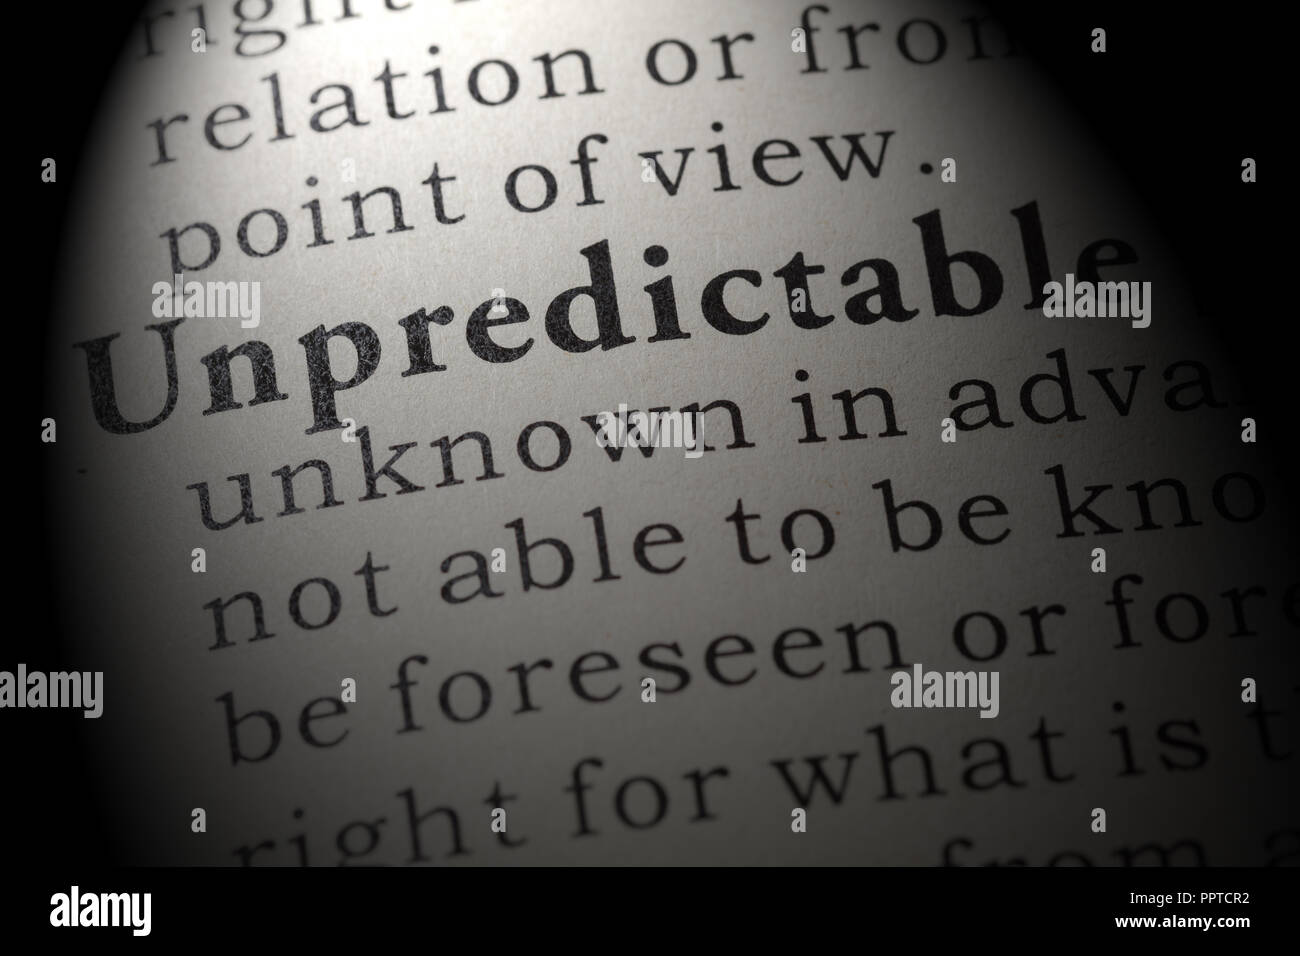 Fake Dictionary, Dictionary definition of the word unpredictable. including key descriptive words. - Stock Image